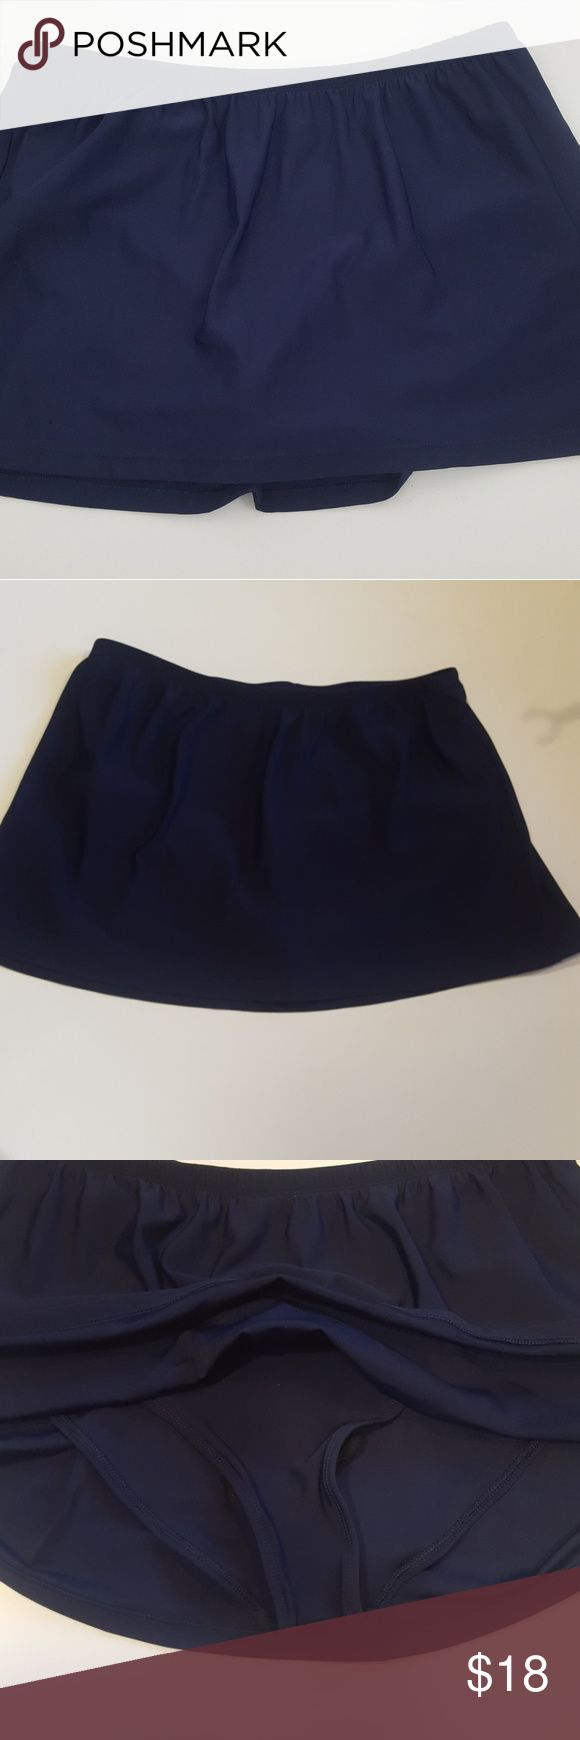 Sports Skirt Delta Burke Workout/Tennis Skirt (16) Sports Skirt by Delta Burke Workout / Tennis Skirt  (16) Navy Blue Delta Burk Skirts Mini